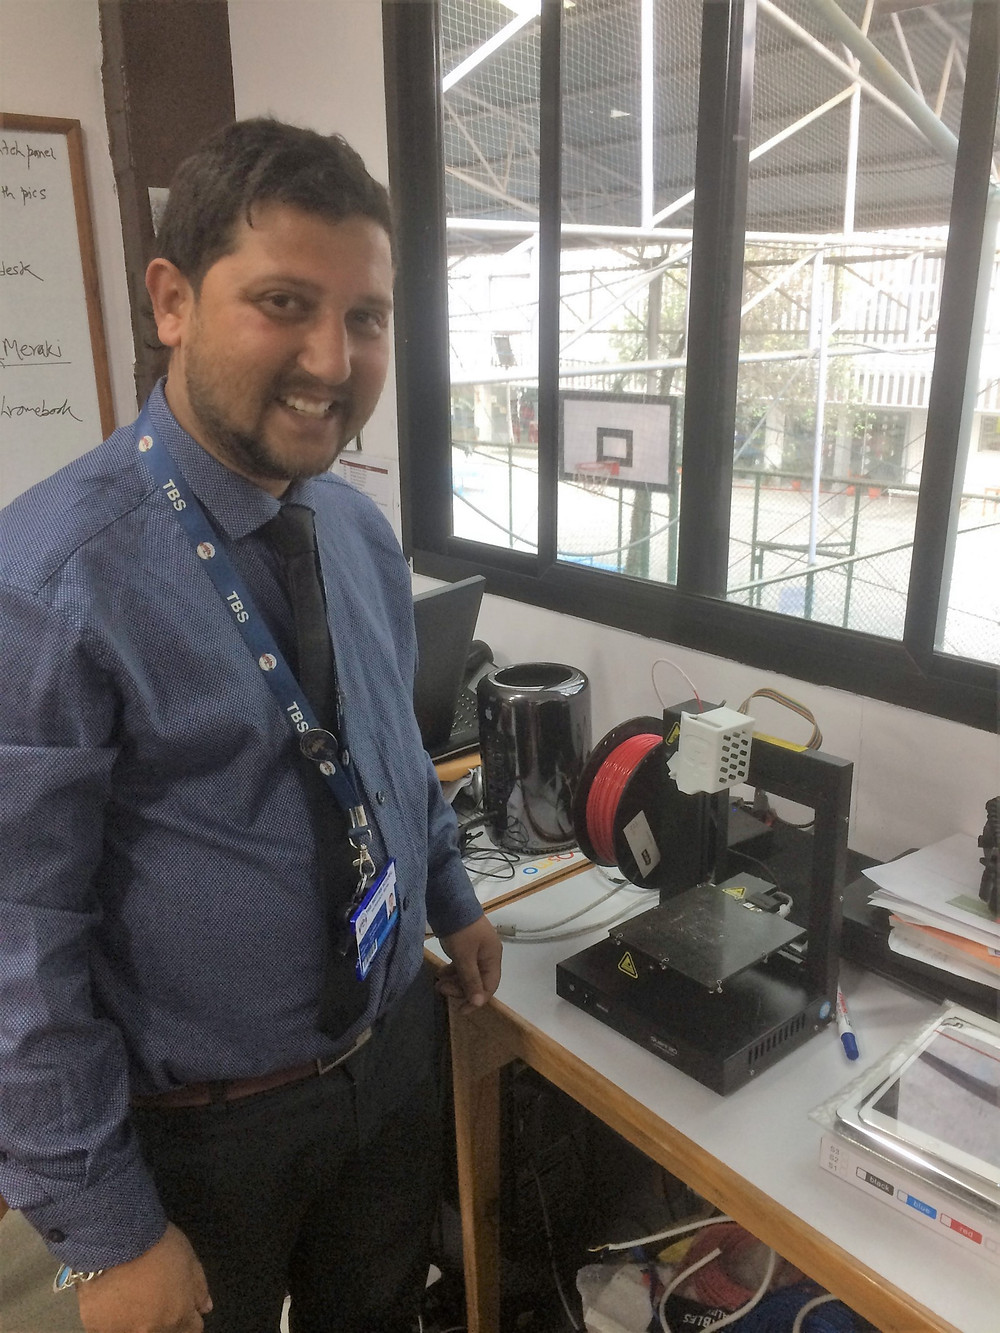 A growing sector: Rohit Sigdel, IT Manager at the prestigious British School, is facilitating the inclusion of 3D printing into the school's IT and design curriculums.